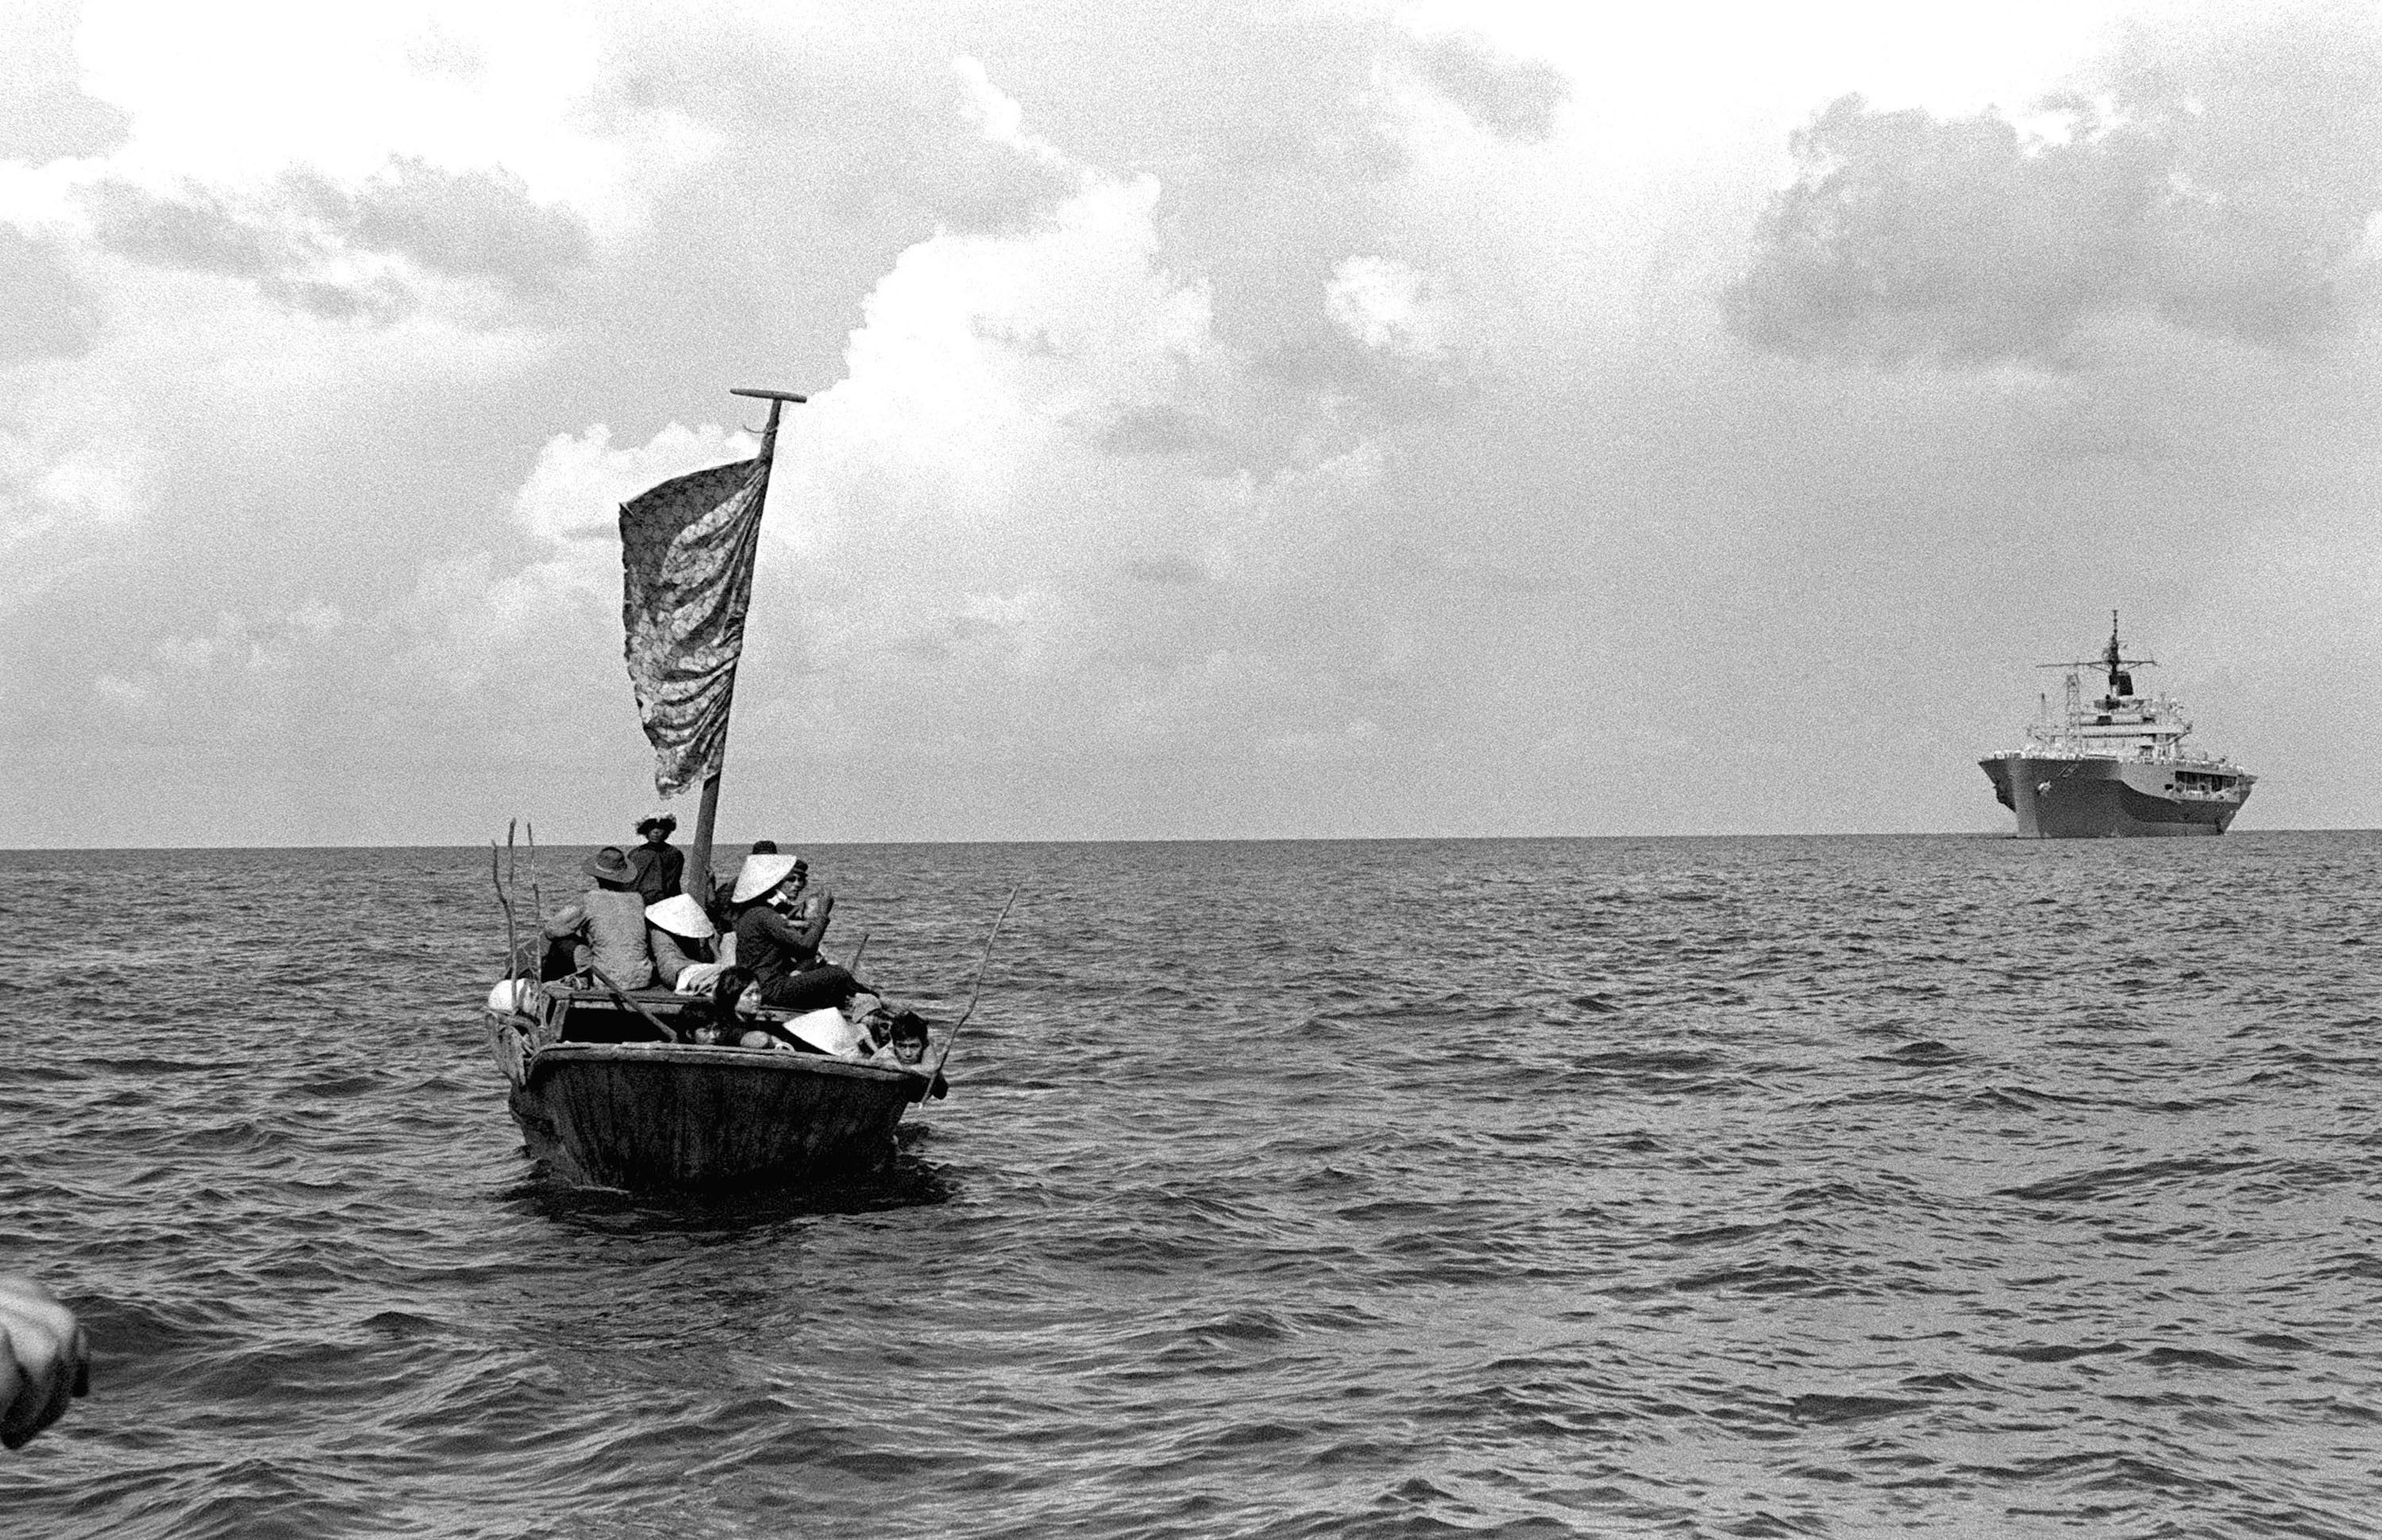 File:BR, Vietnam, 1982, Boat People (1979-1984), file 01.jpg - Wikimedia Commons